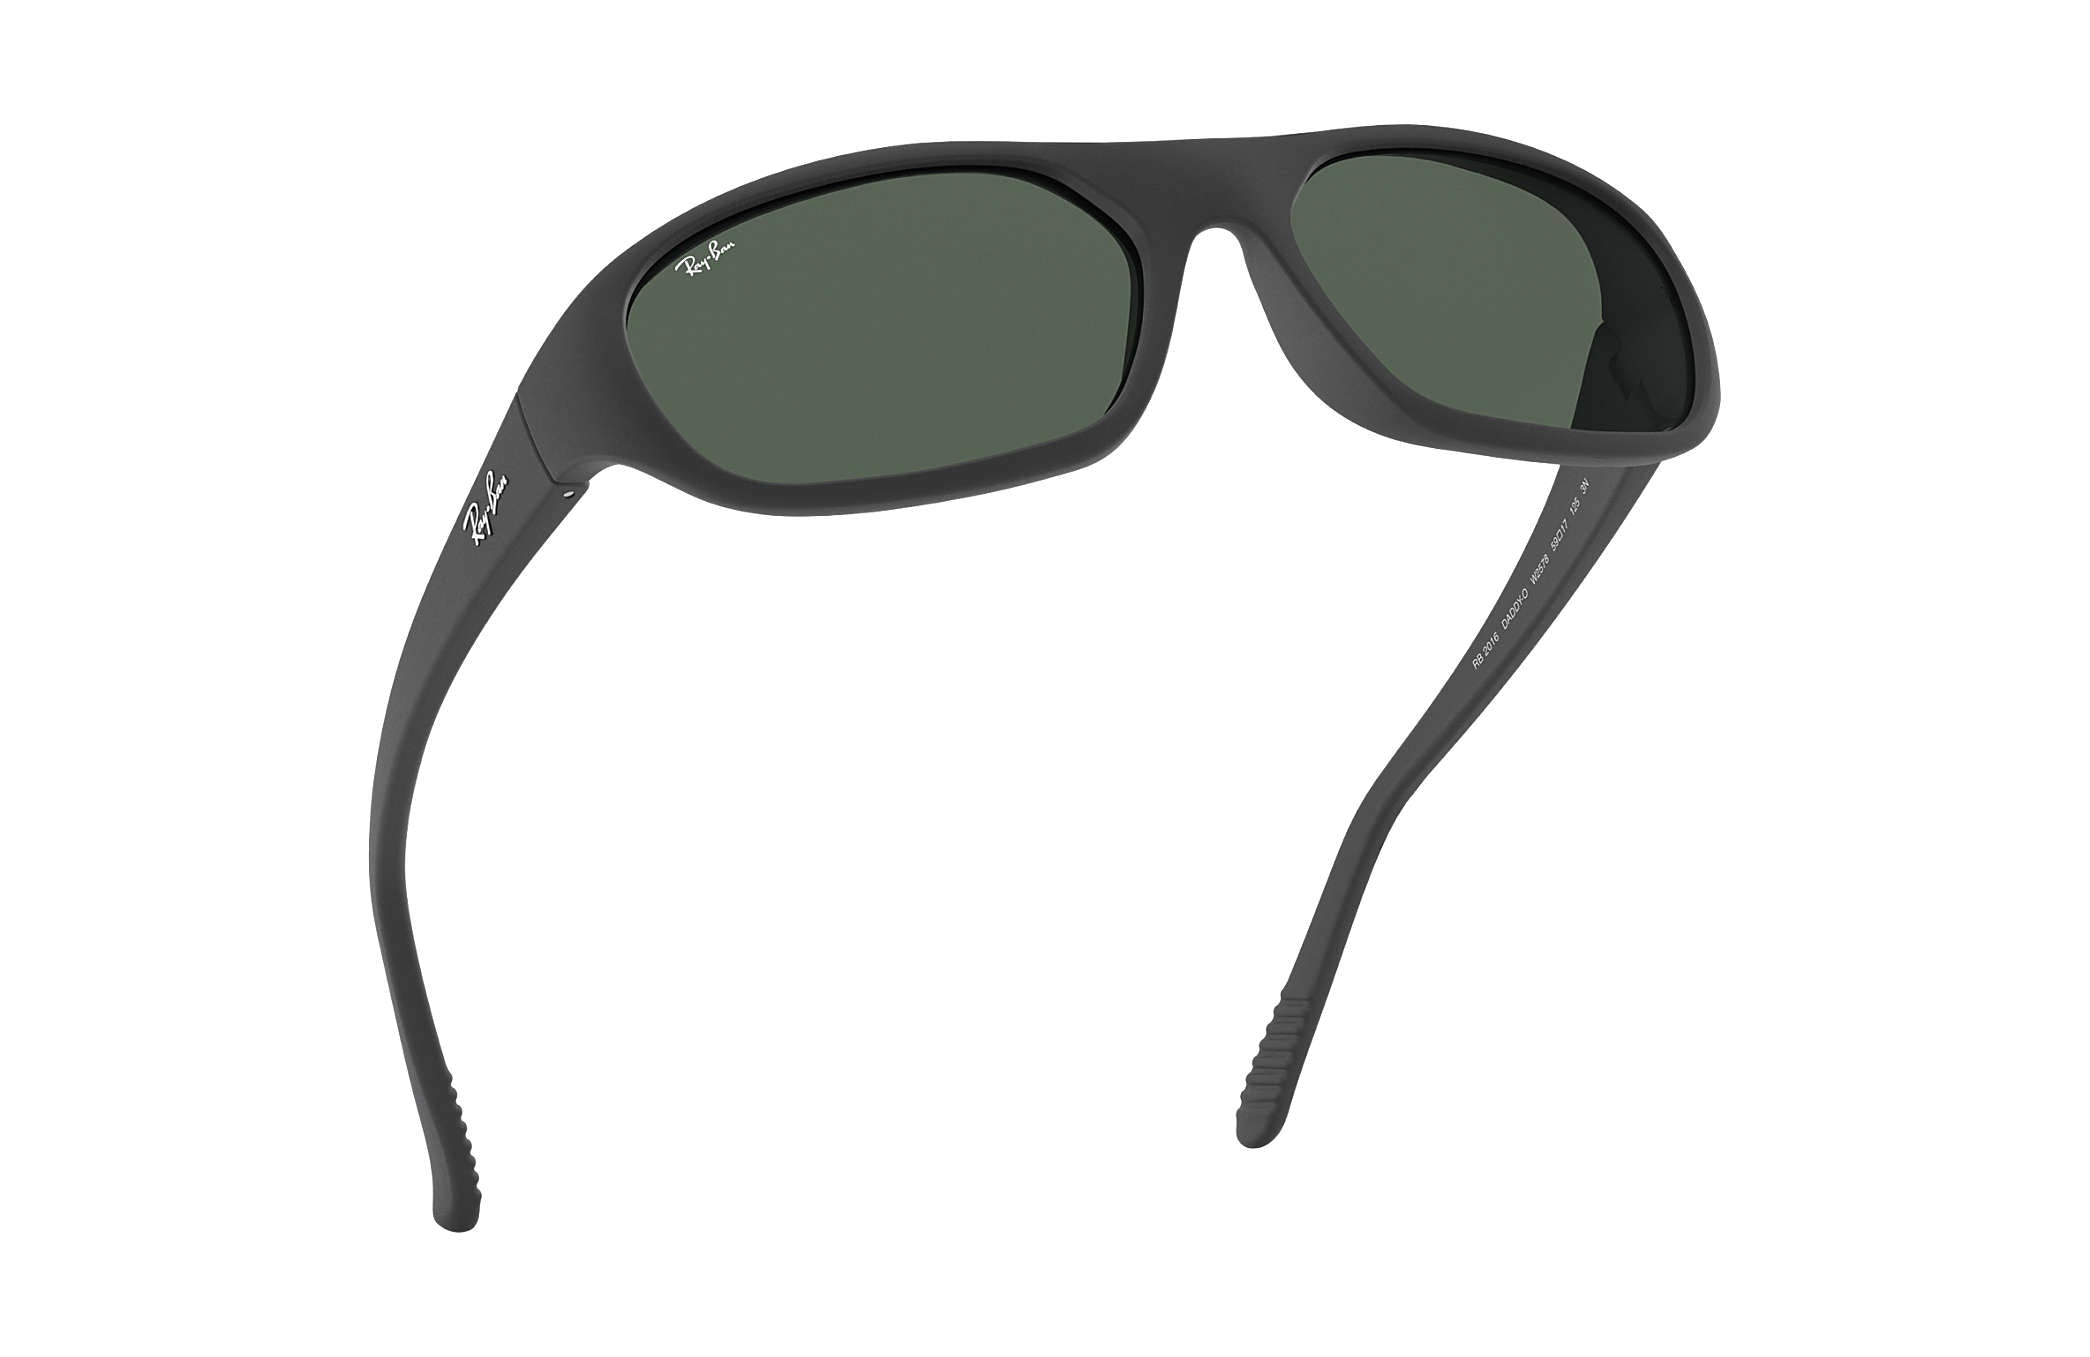 RAY-BAN RB2016 - DADDY-O SQUARE WRAP SUNGLASSES - OPTICIWEAR.COM